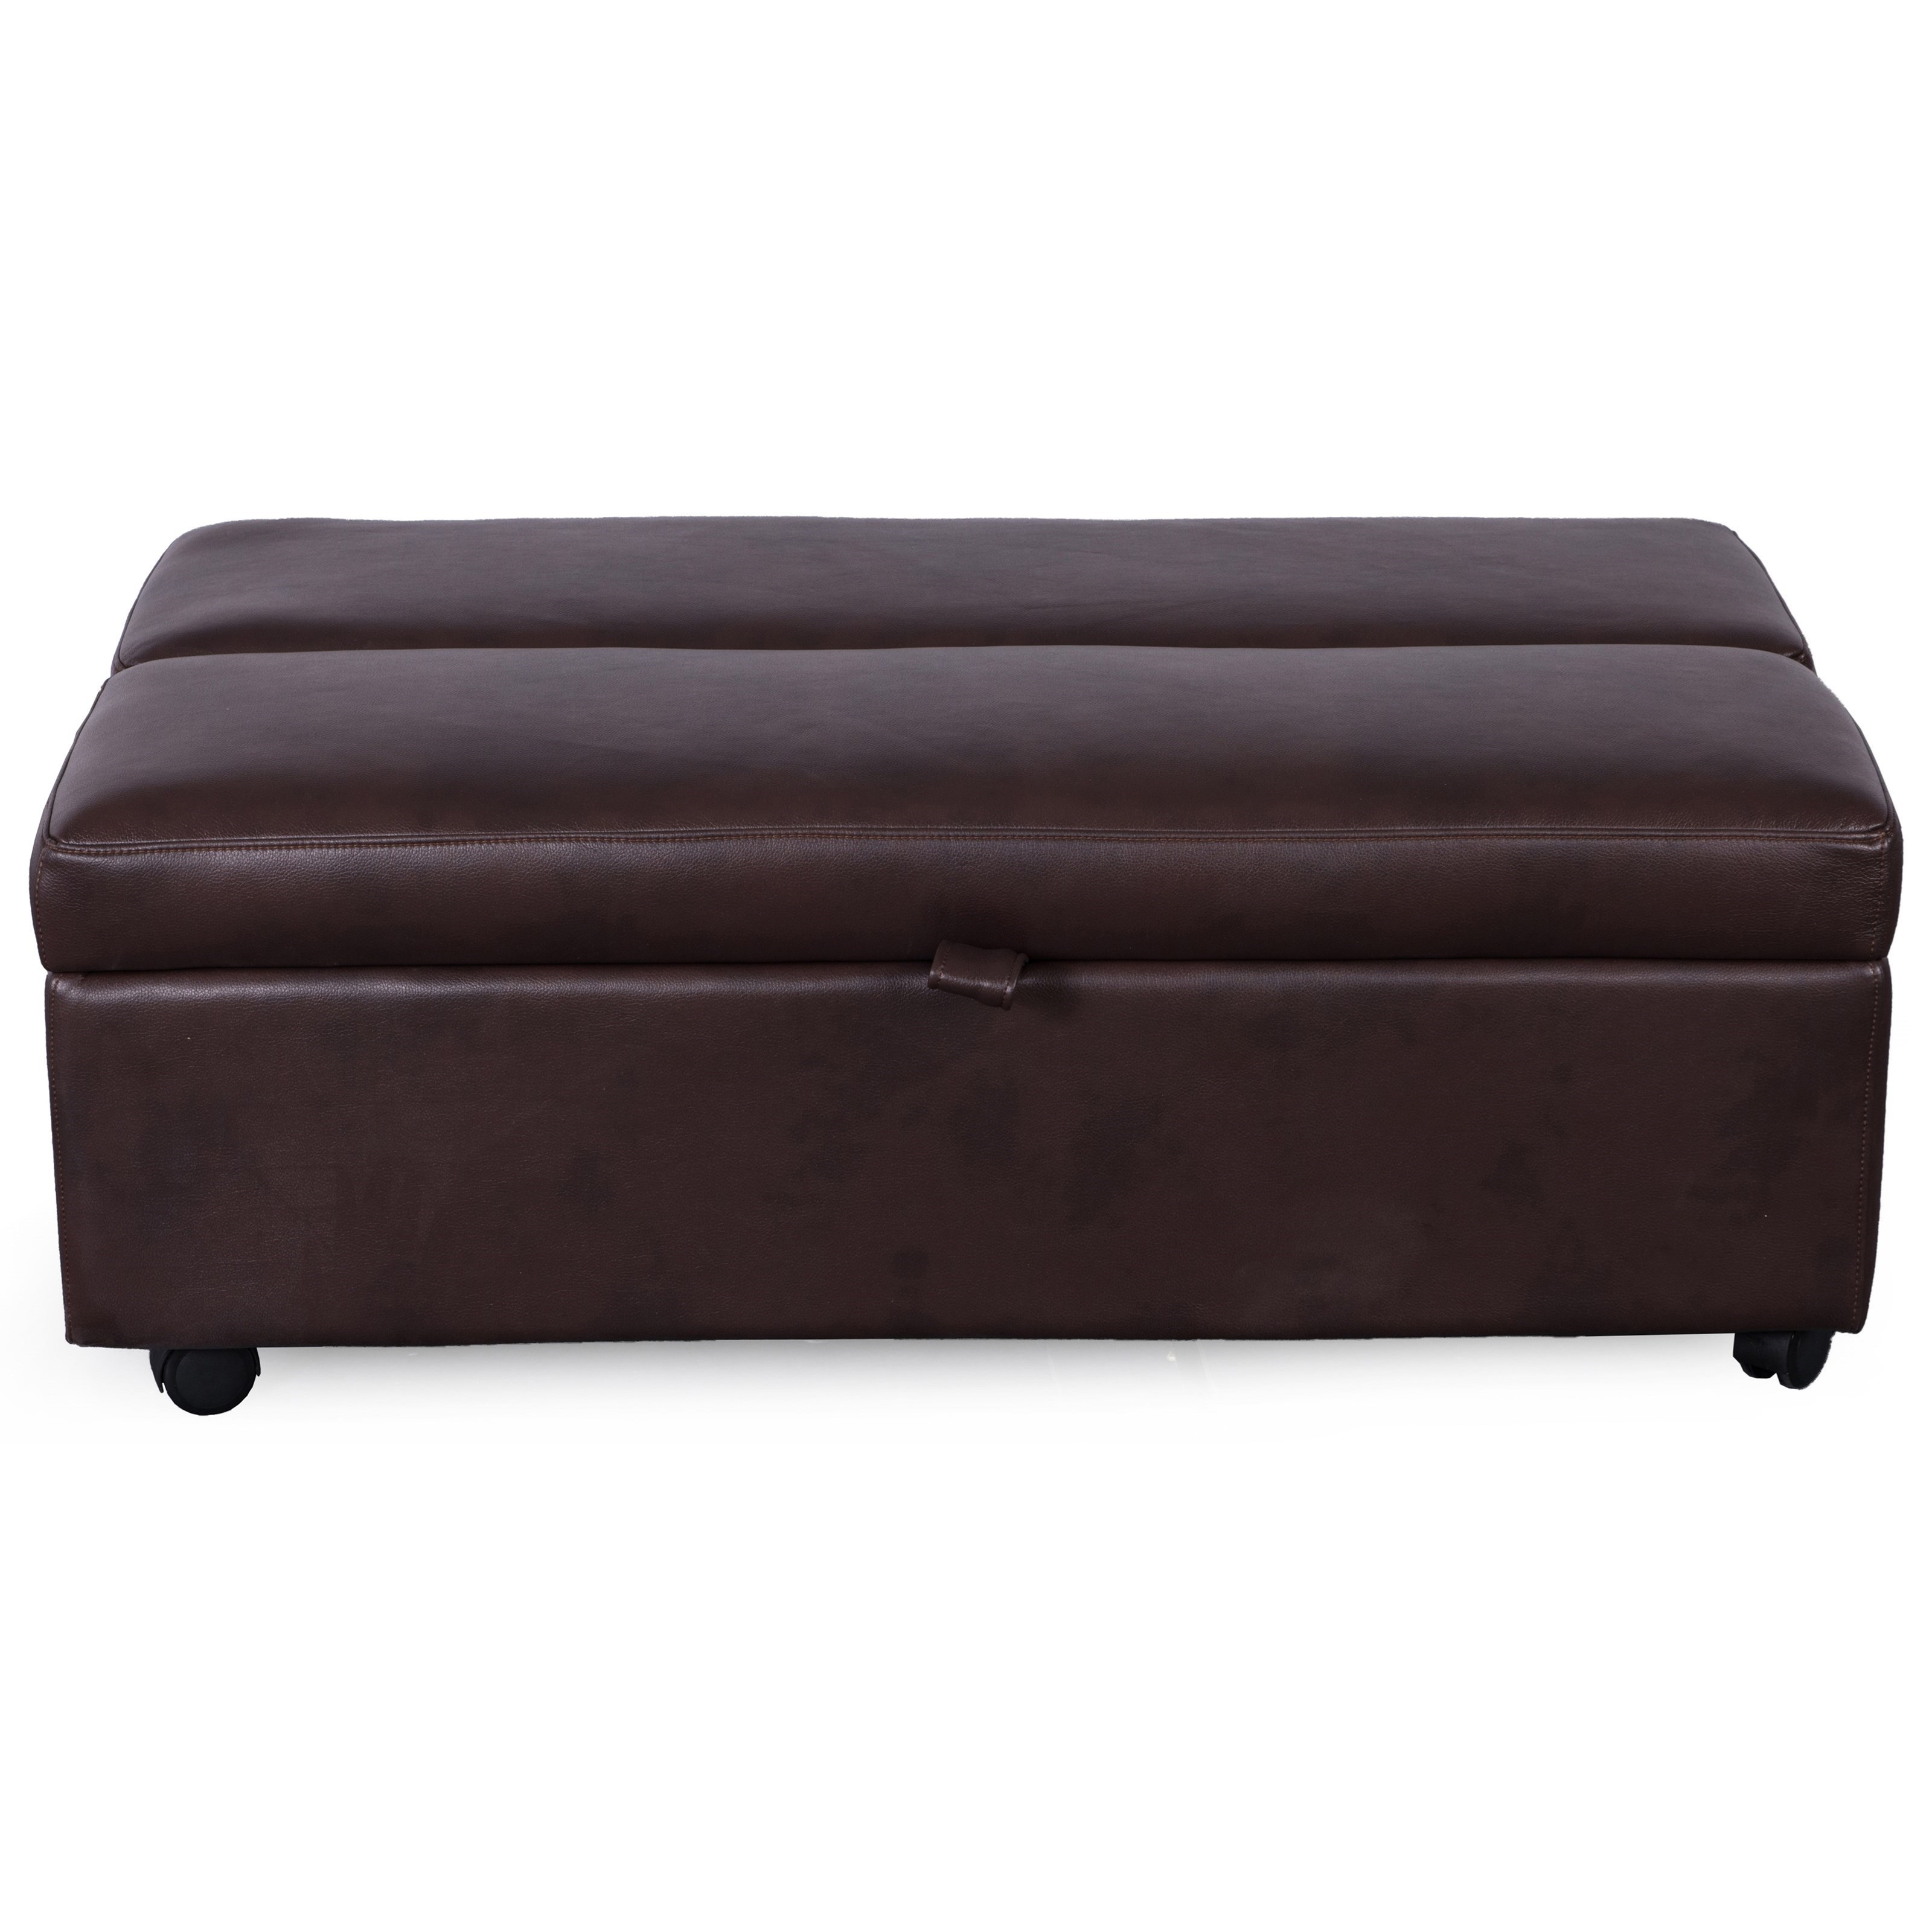 Synergy Home Furnishings 1021 Sleeper Ottoman With Pullout Twin Mattress